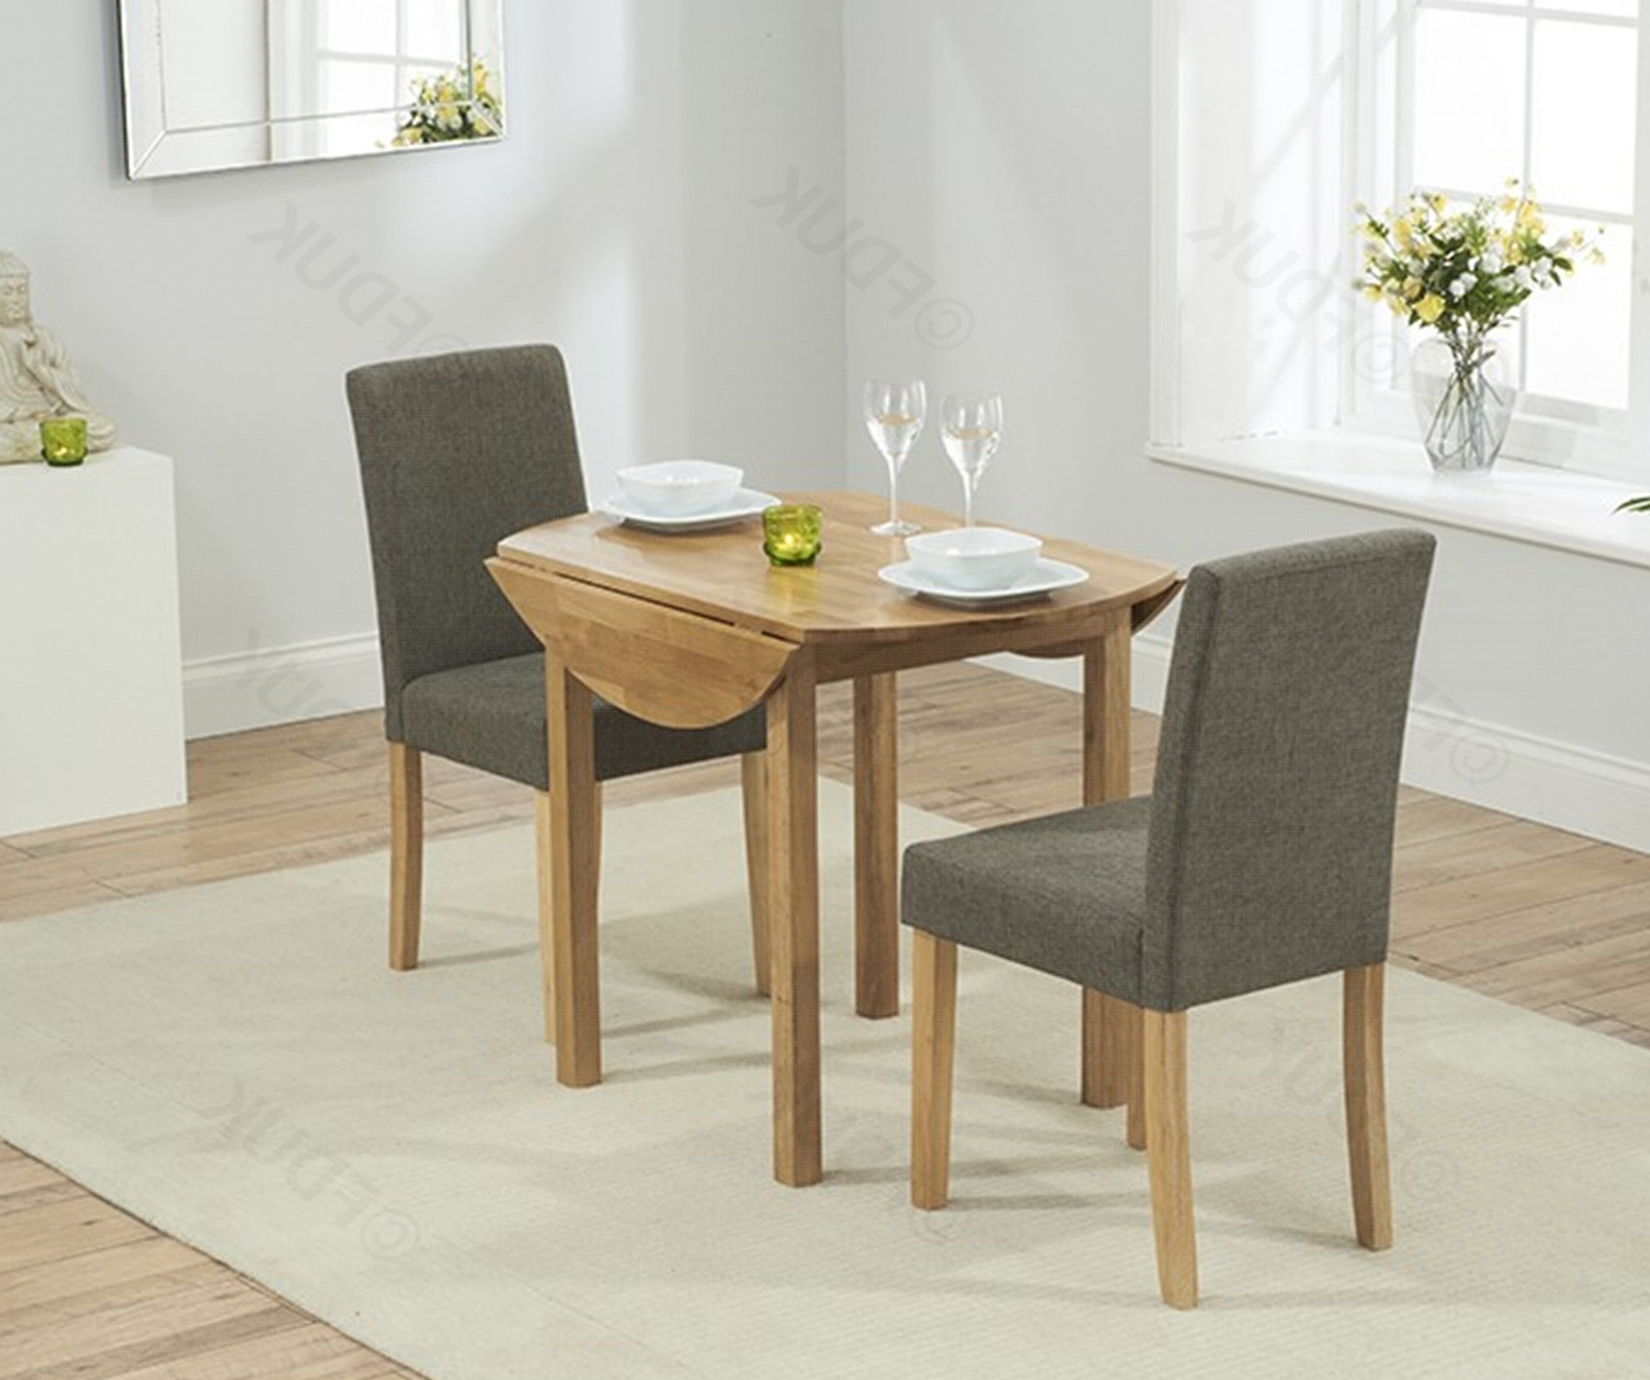 Oak Round Dining Tables And Chairs With Regard To Newest Mark Harris Promo (View 20 of 25)